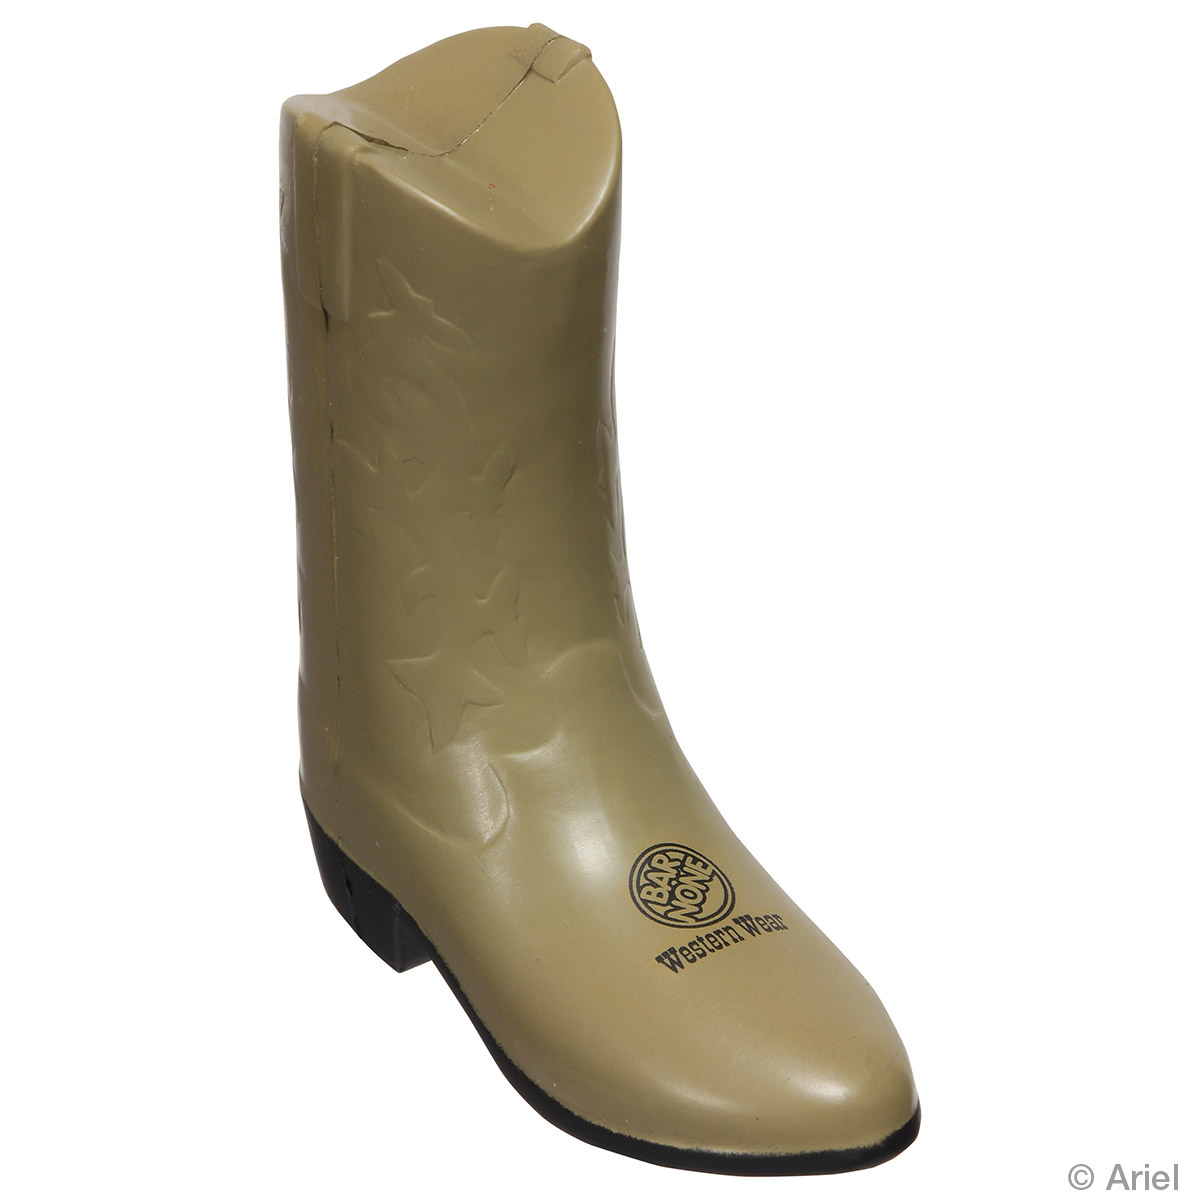 Cowboy Boot Stress Reliever, LWE-CB88 - 1 Colour Imprint